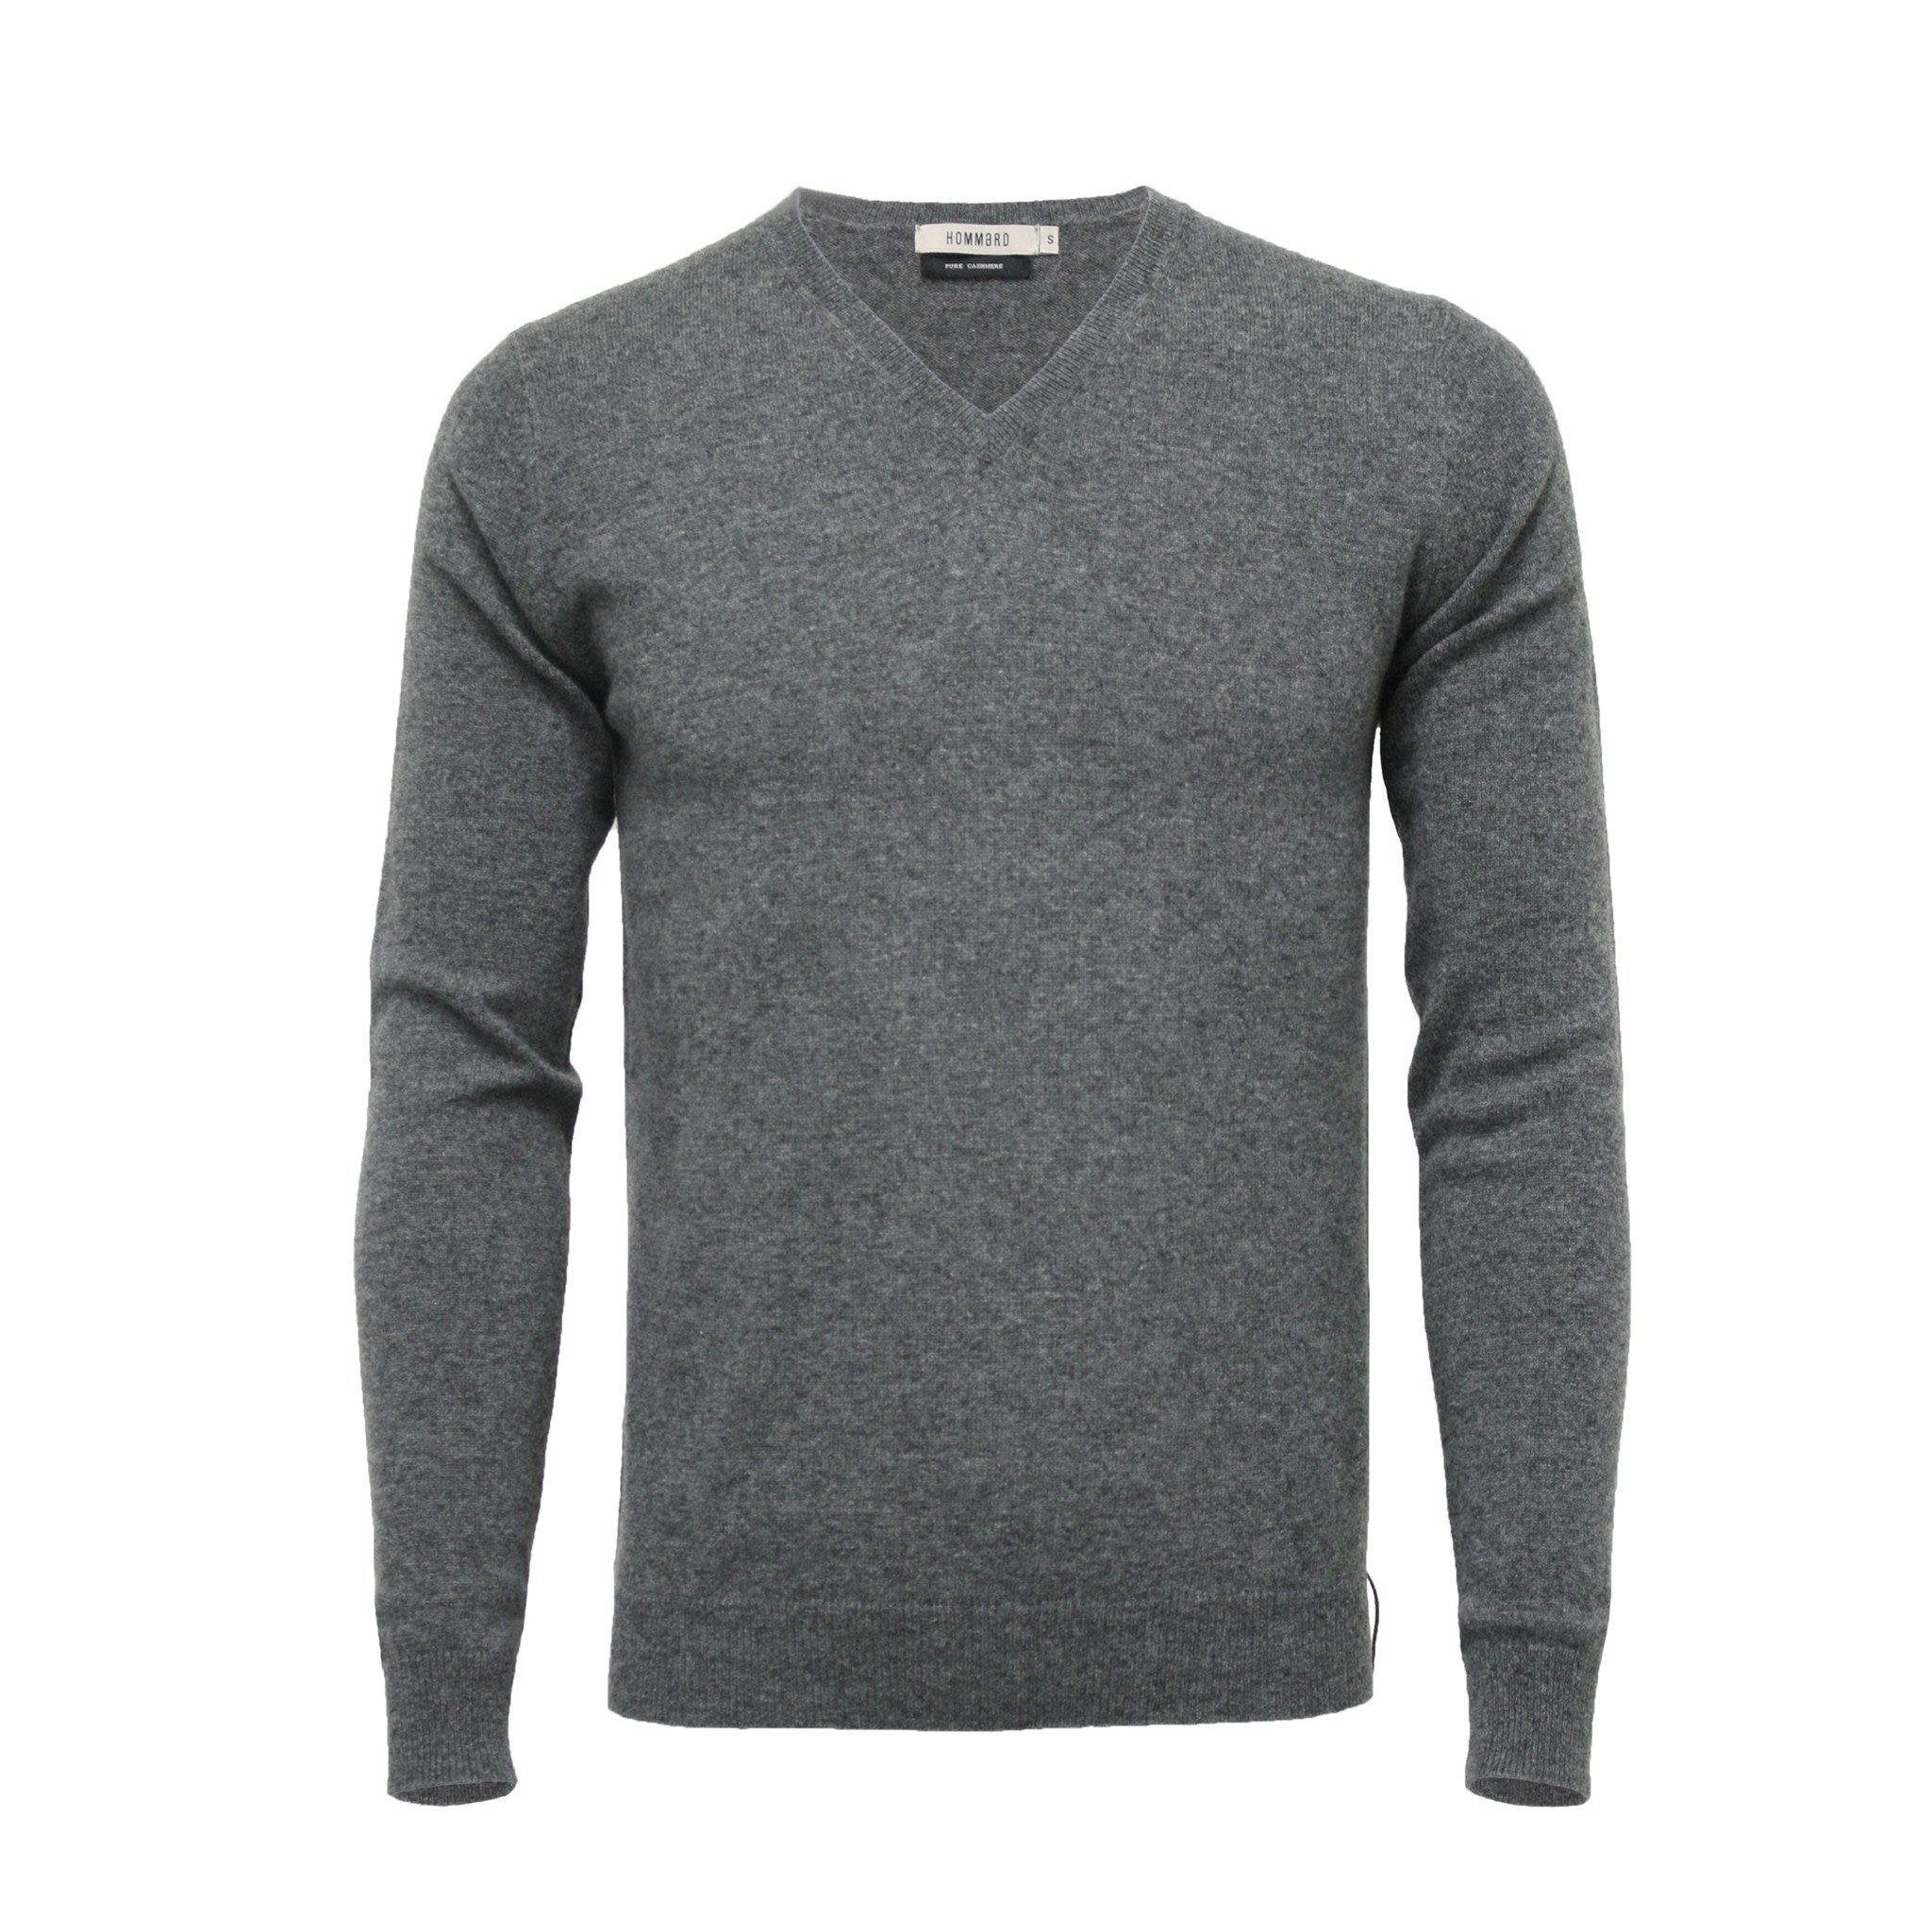 Cashmere V Neck Sweater Mid Grey